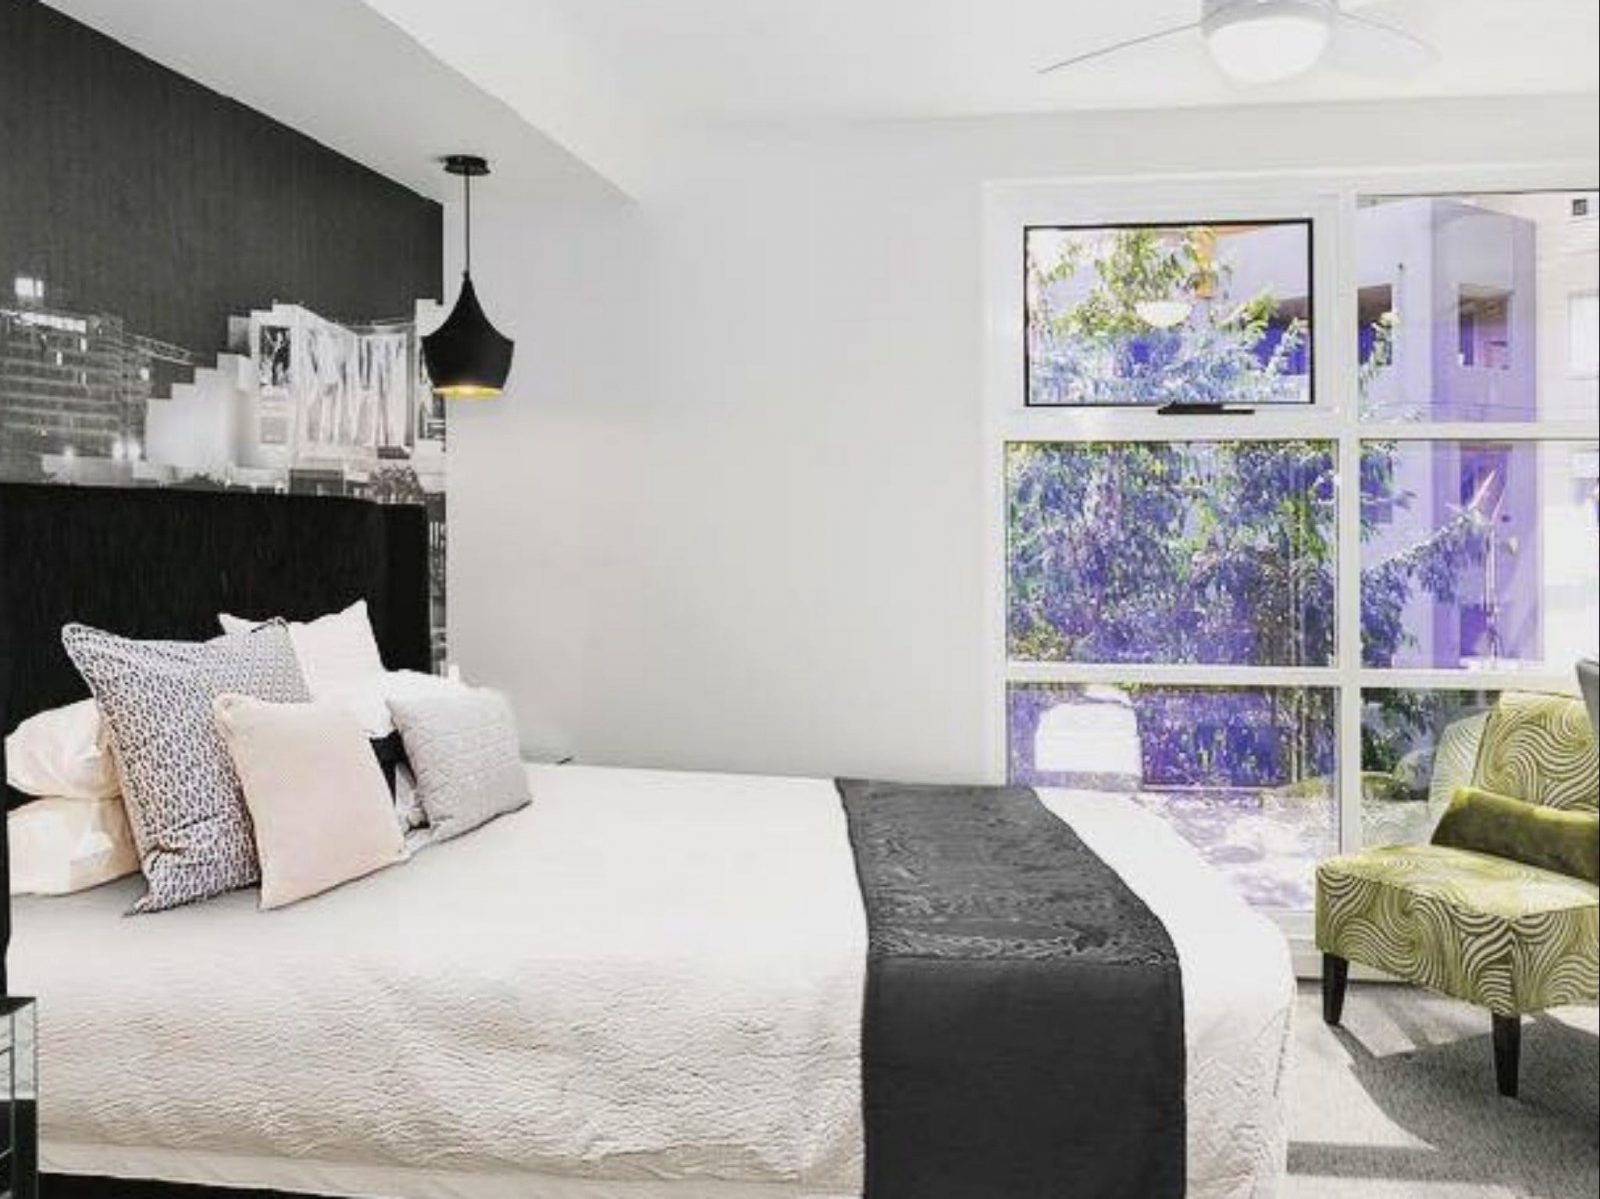 Southbank in South Brisbane has room modern comfortable rooms of various sizes to suit your stay.